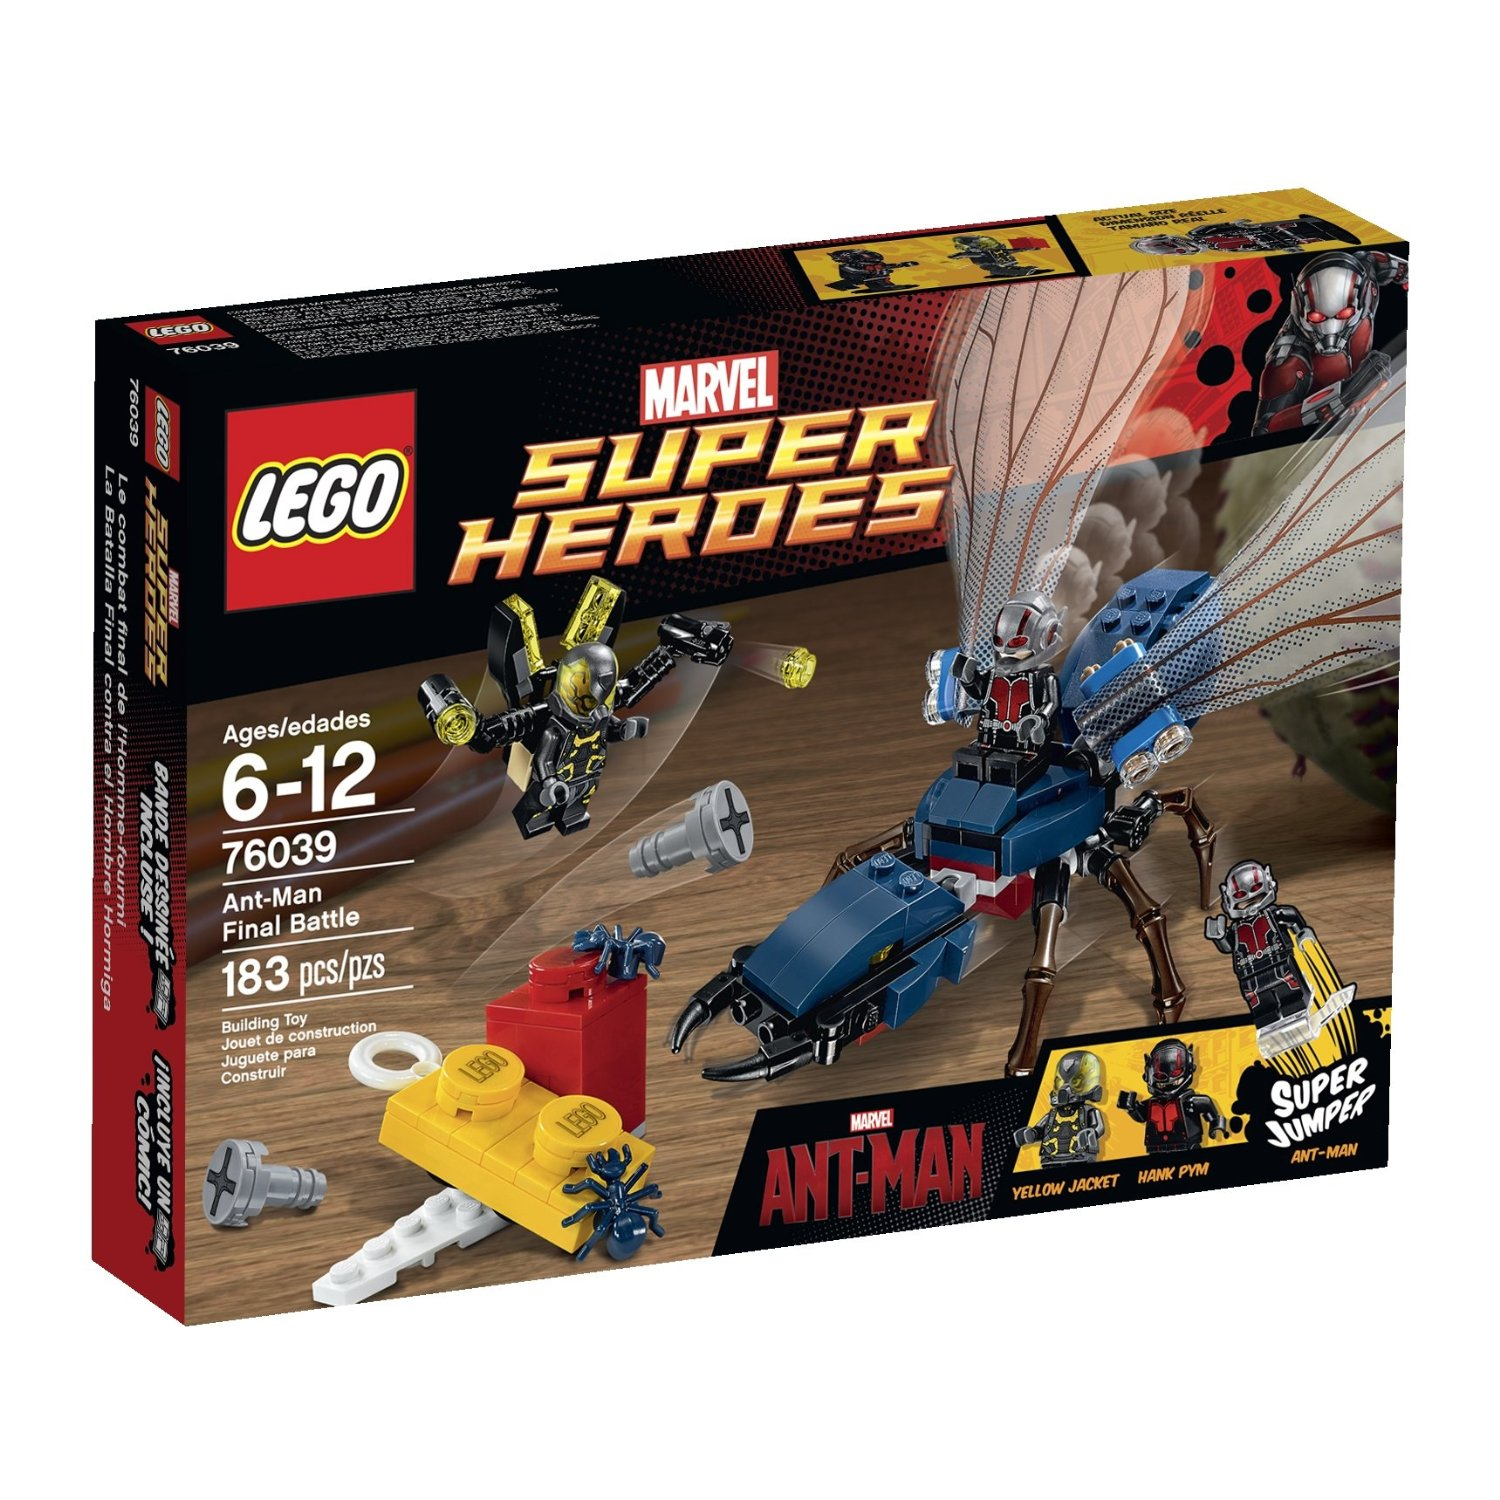 LEGO Superheroes Marvel's Ant-Man 76039 Building Kit (Discontinued by manufacturer)